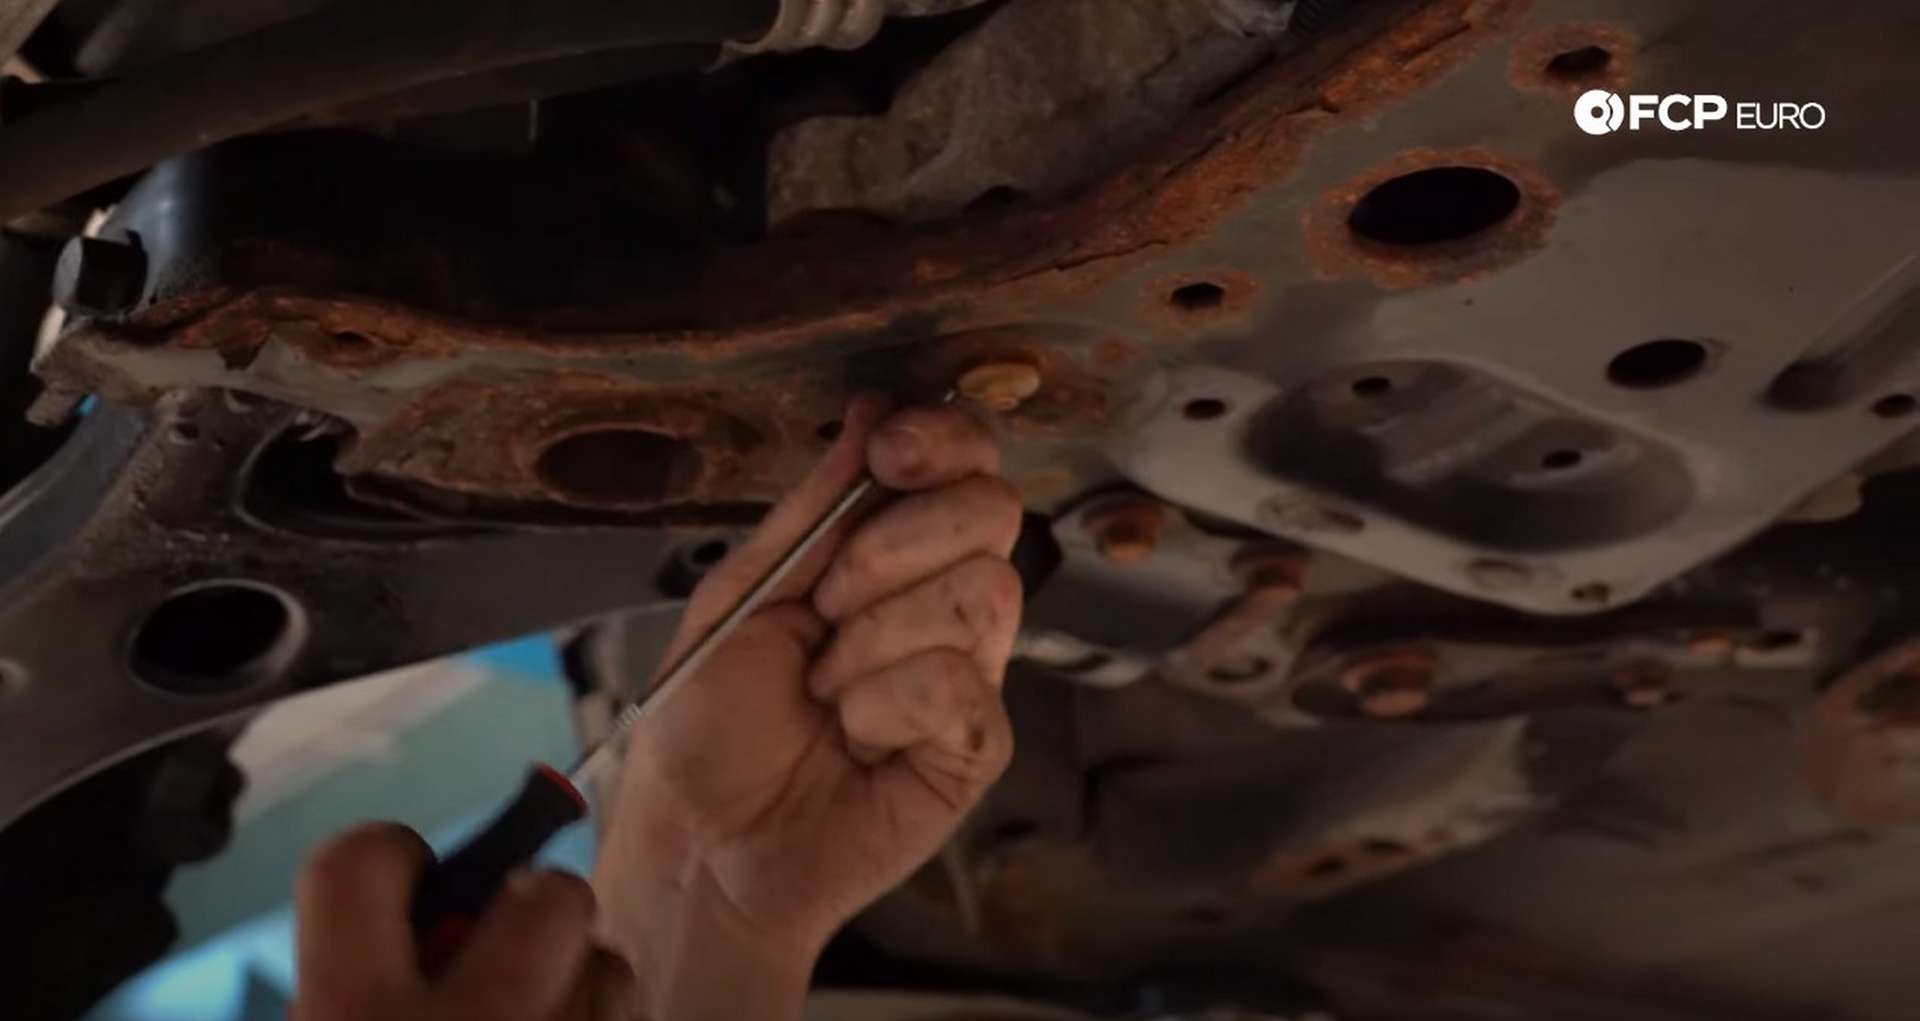 DIY Volvo Alternator and Serpentine Belt Replacement removing the old white clips